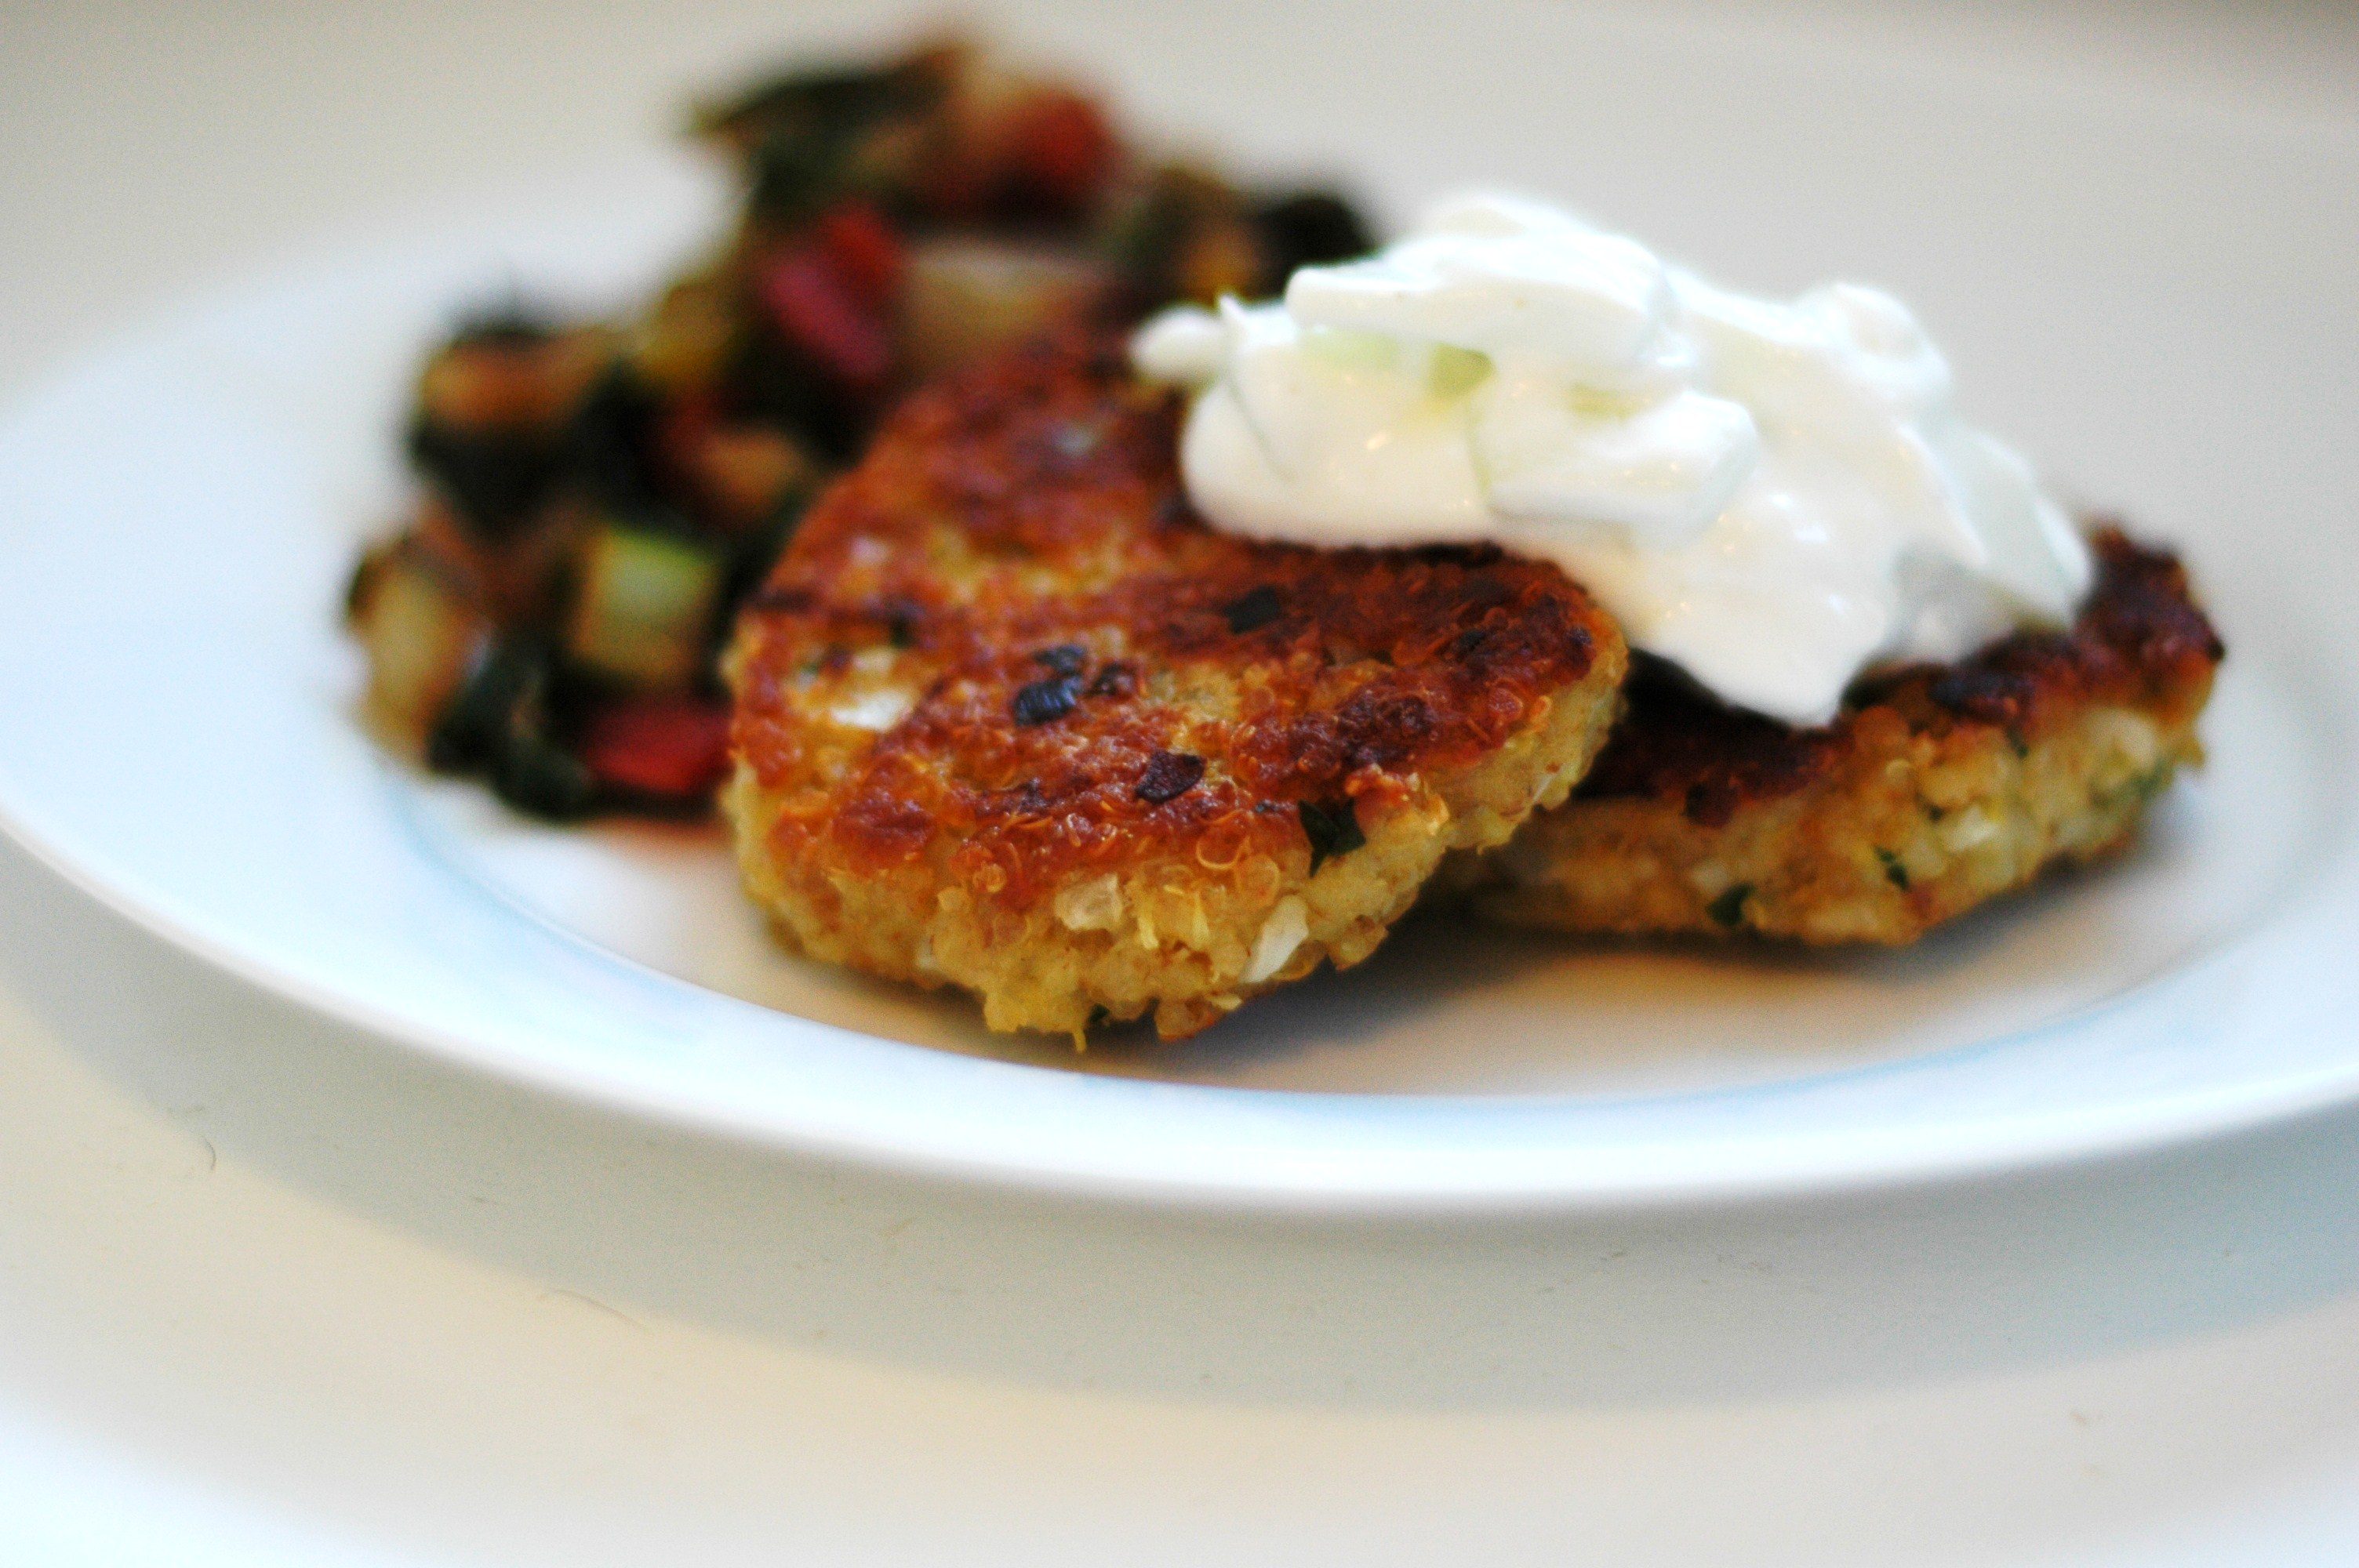 Little Quinoa Patties - but i'm hungry